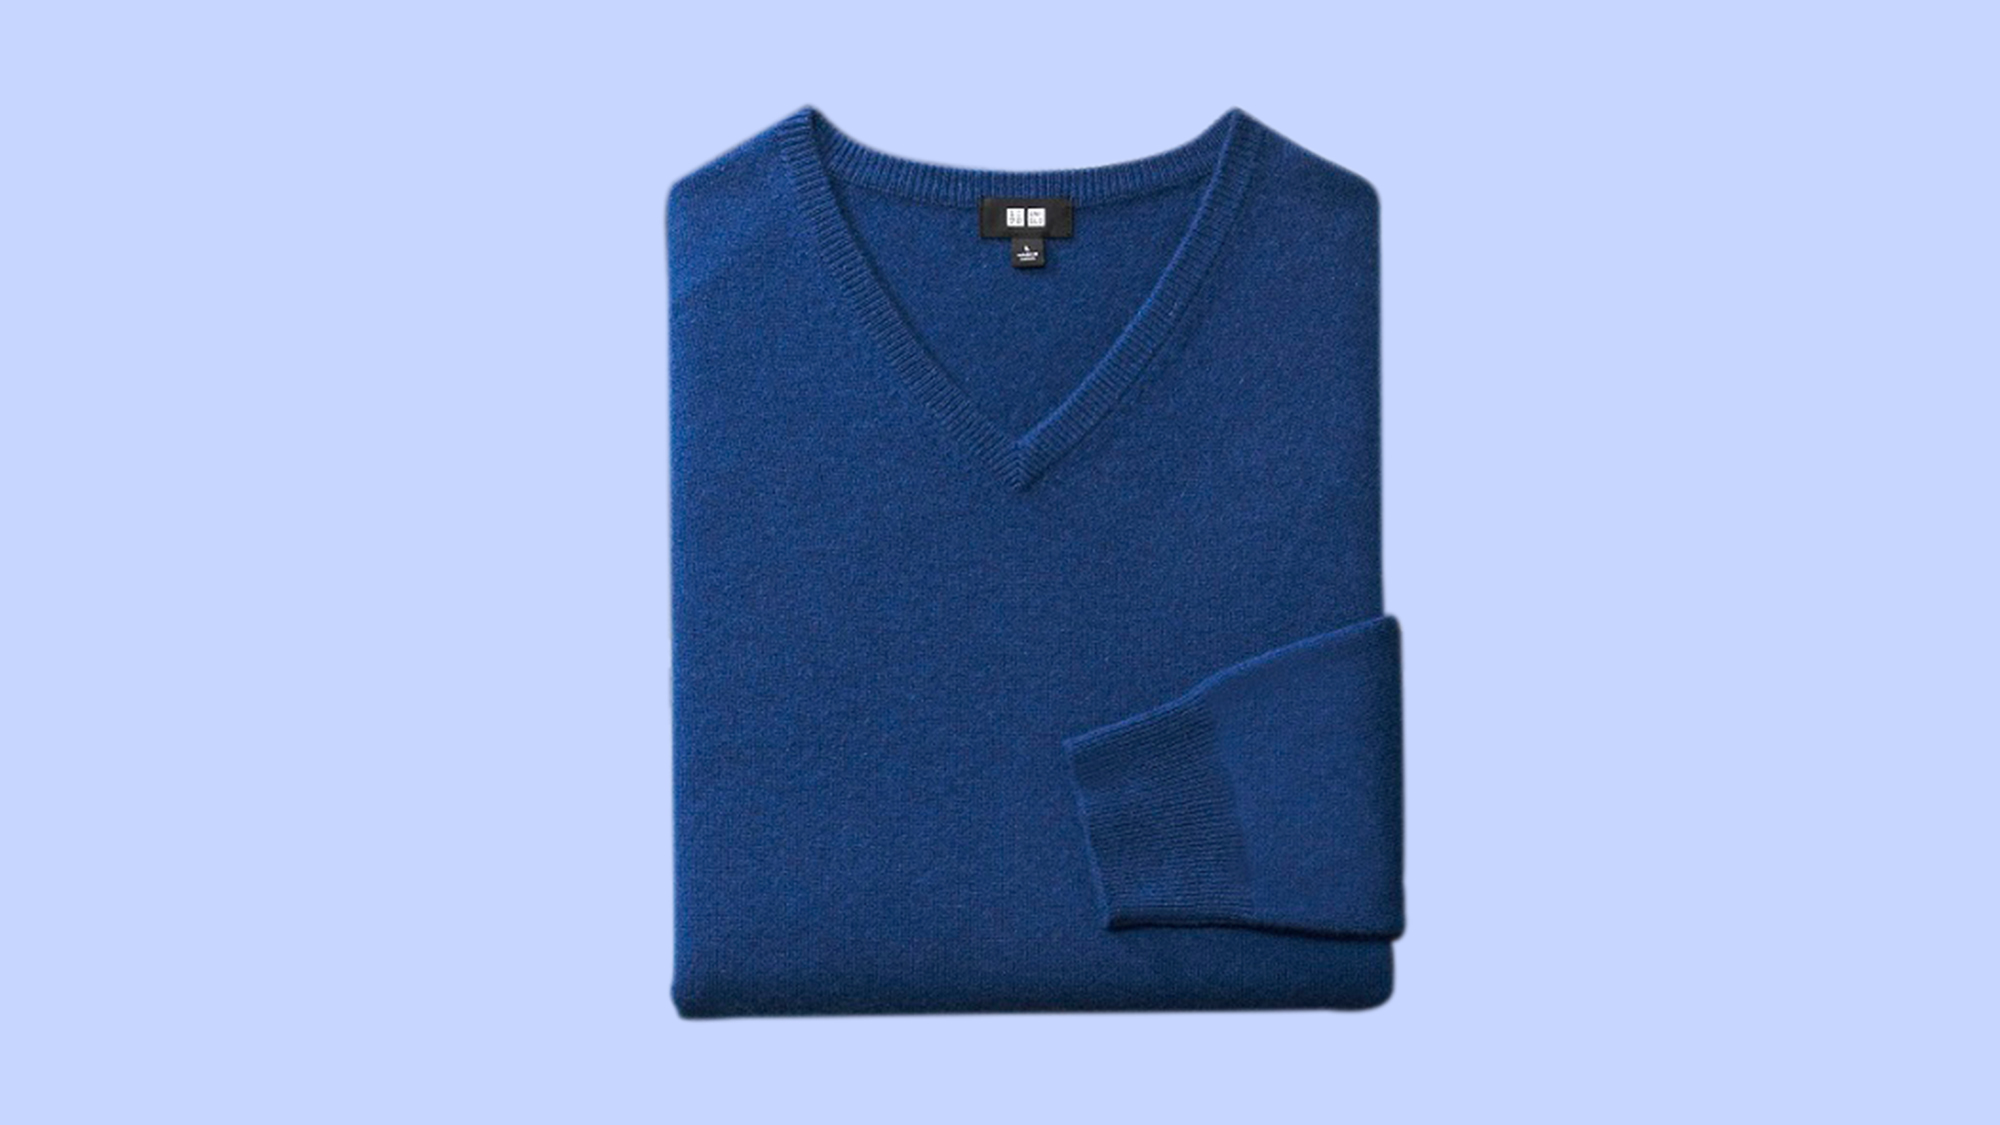 Cashmere sweater from Uniqlo